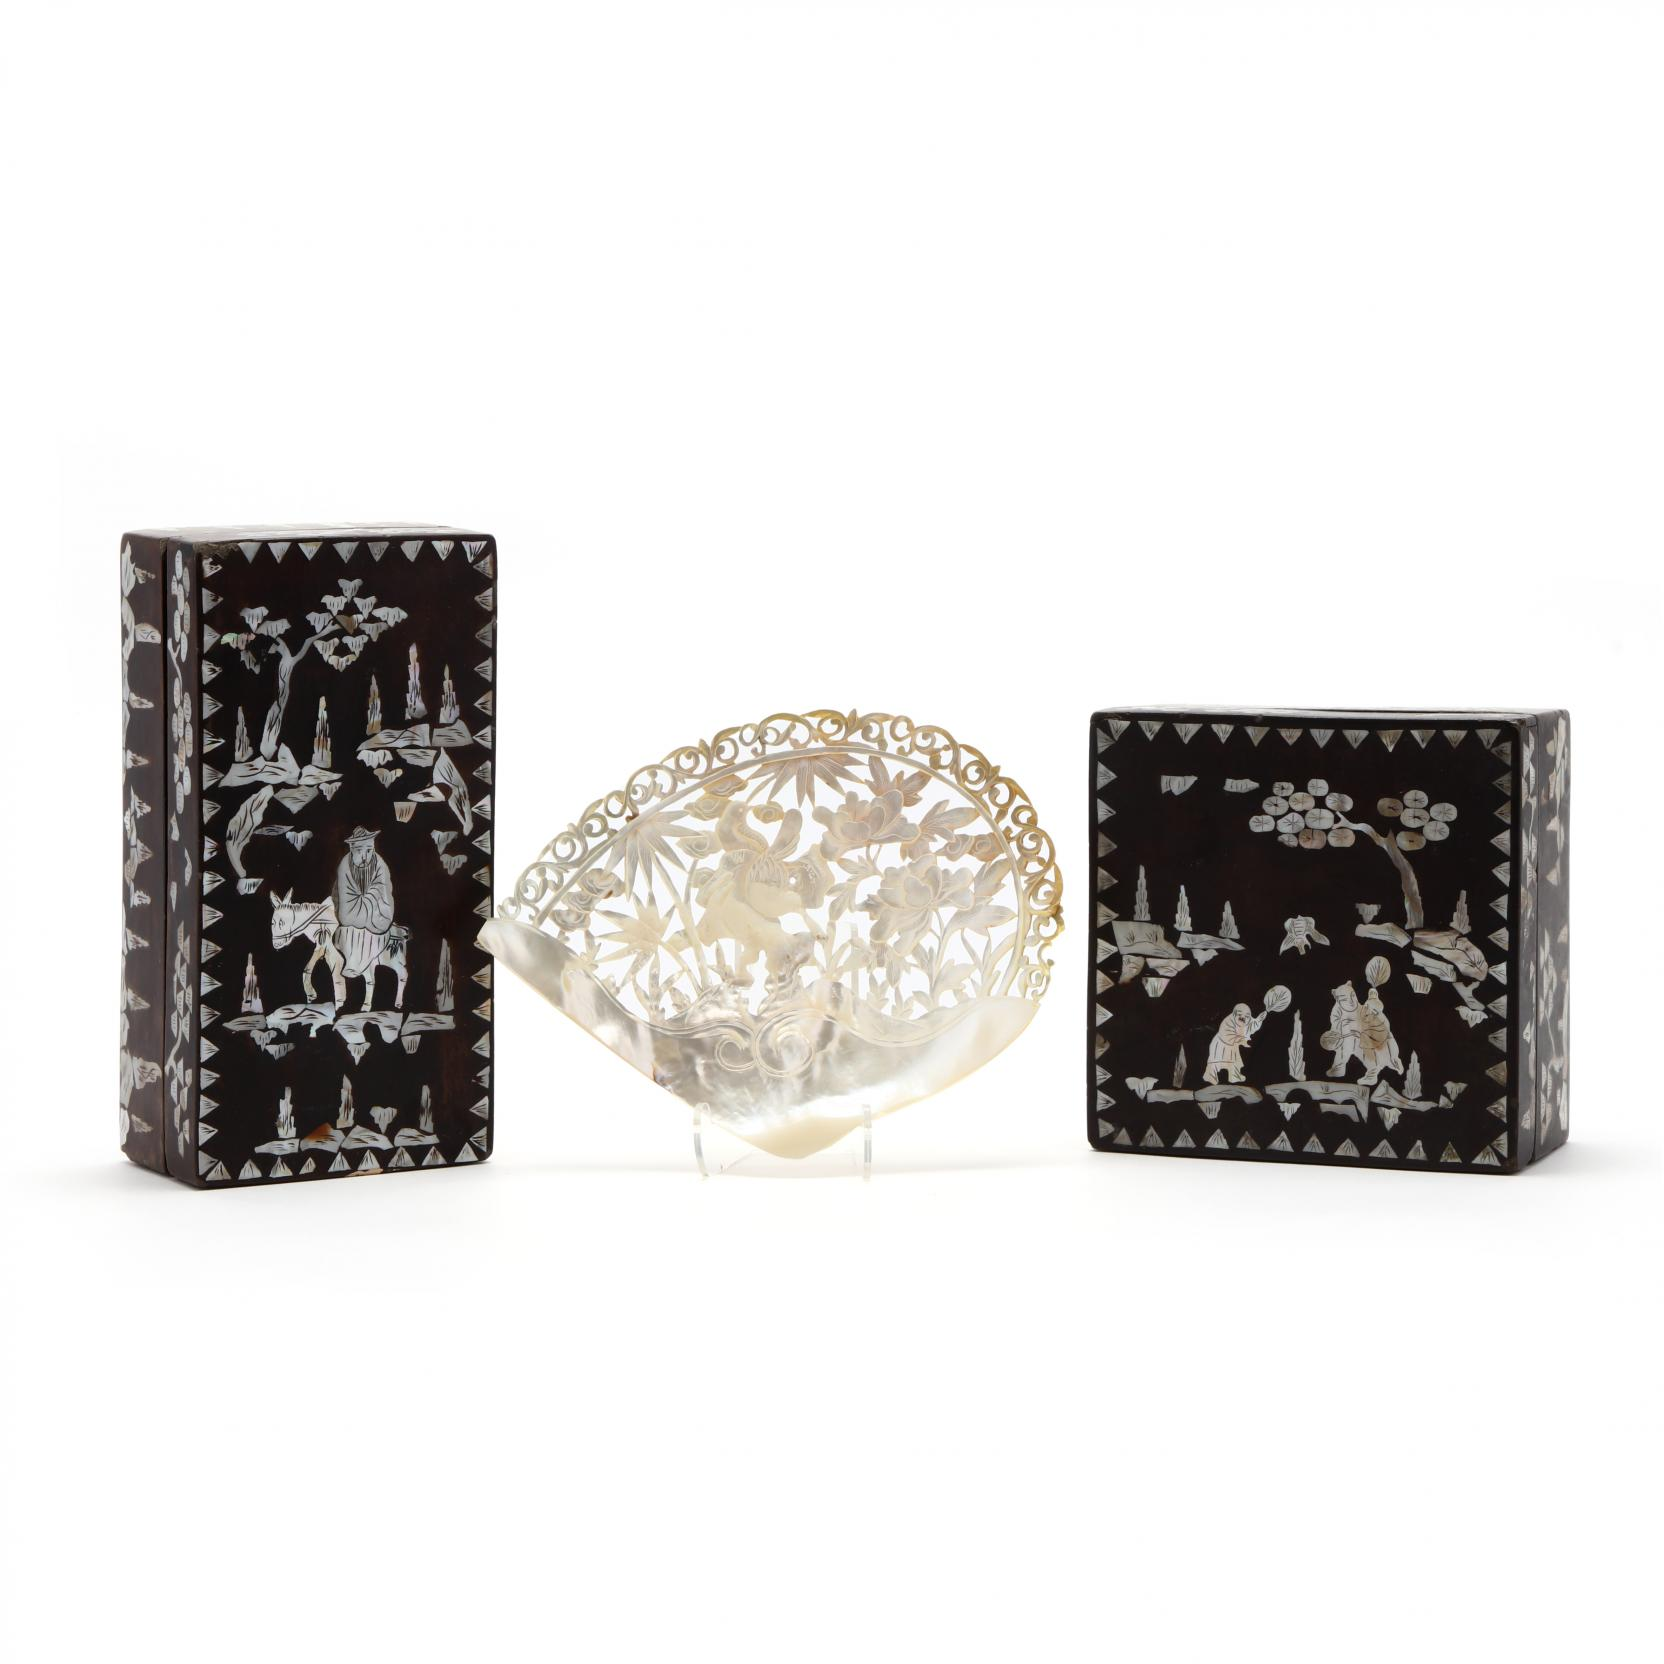 a-carved-shell-and-two-boxes-with-mother-of-pearl-inlay